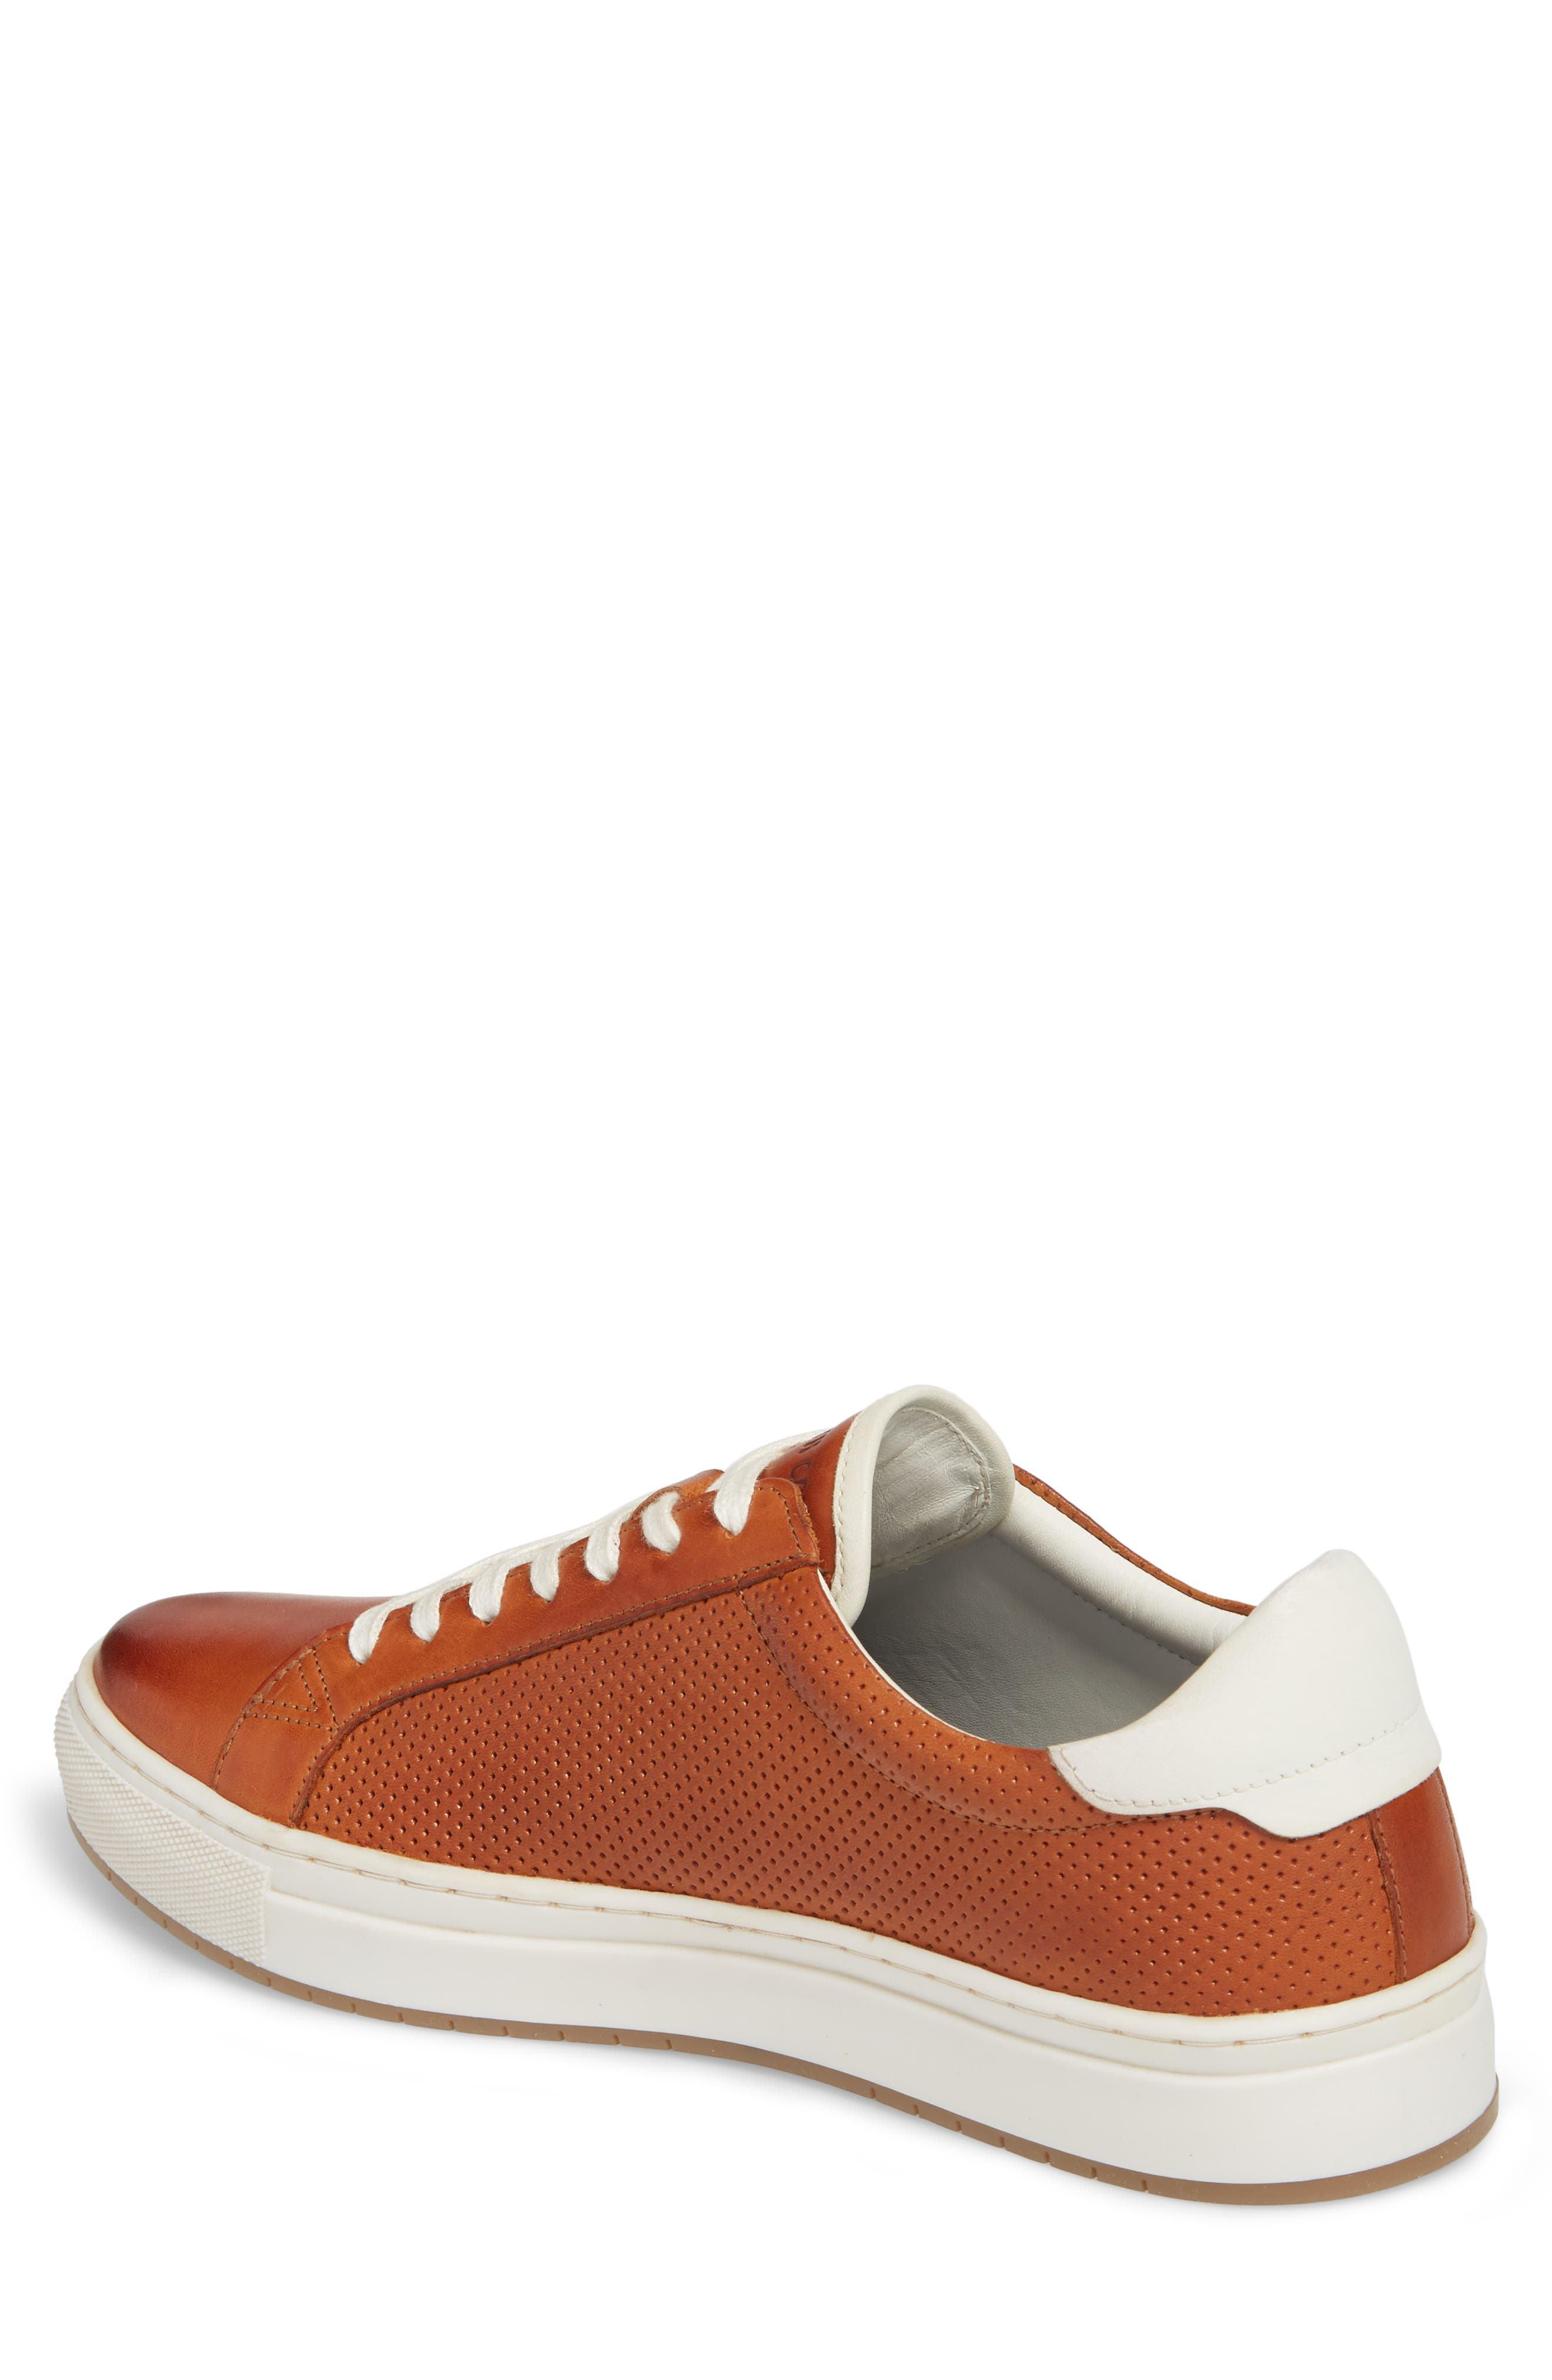 Don Embossed Lace-Up Sneaker,                             Alternate thumbnail 2, color,                             Cognac Leather